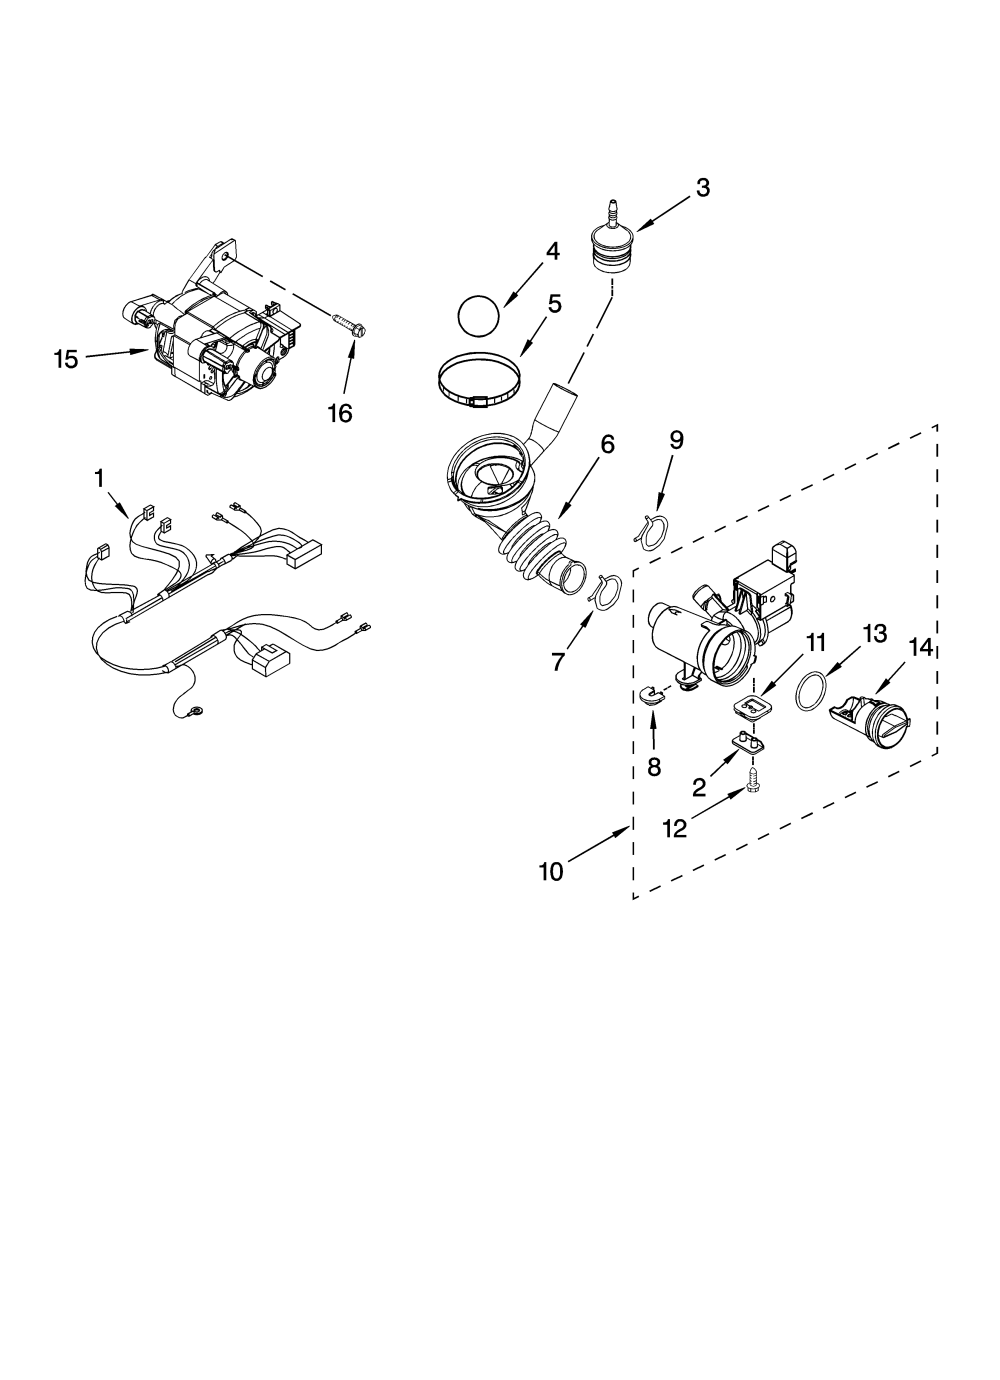 medium resolution of whirlpool wfw8400tw02 pump and motor parts diagram